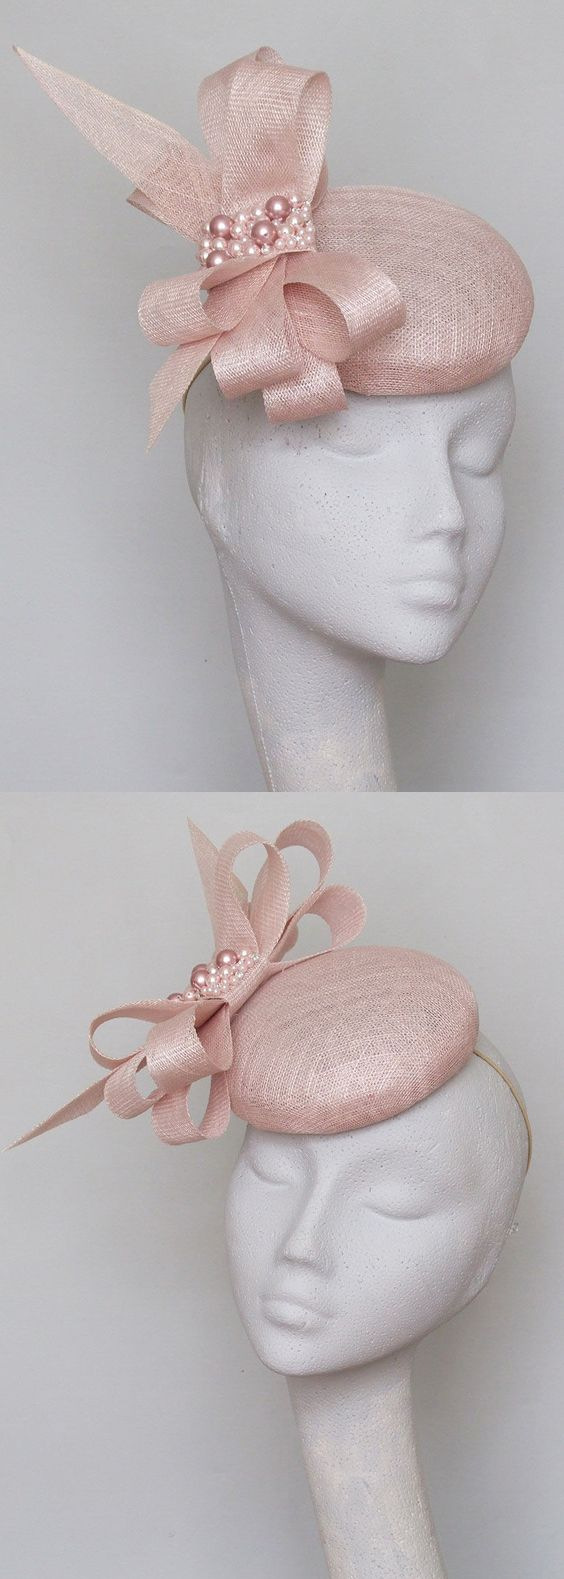 Pastel Pink Smartie Percher Headpiece Hatinator Fascinator with Swarovski Pearls, for Kentucky Derby, Del Mar, Epsom, Royal Ascot. Gold Lace Veiled Floral Fascinator for Racing Day at the Races, Dubai World Cup racing fashion inspiration. Spring wedding outfits, Mother of the bride. #kentuckyderby #royalascot #fascinators #springwedding #weddingguest  #millinery #weddings #derbyoutfits #racingfashion #ascothats #derbyhats #handmadeonetsy #affiliatelink #handmadeisbest #swarovski…